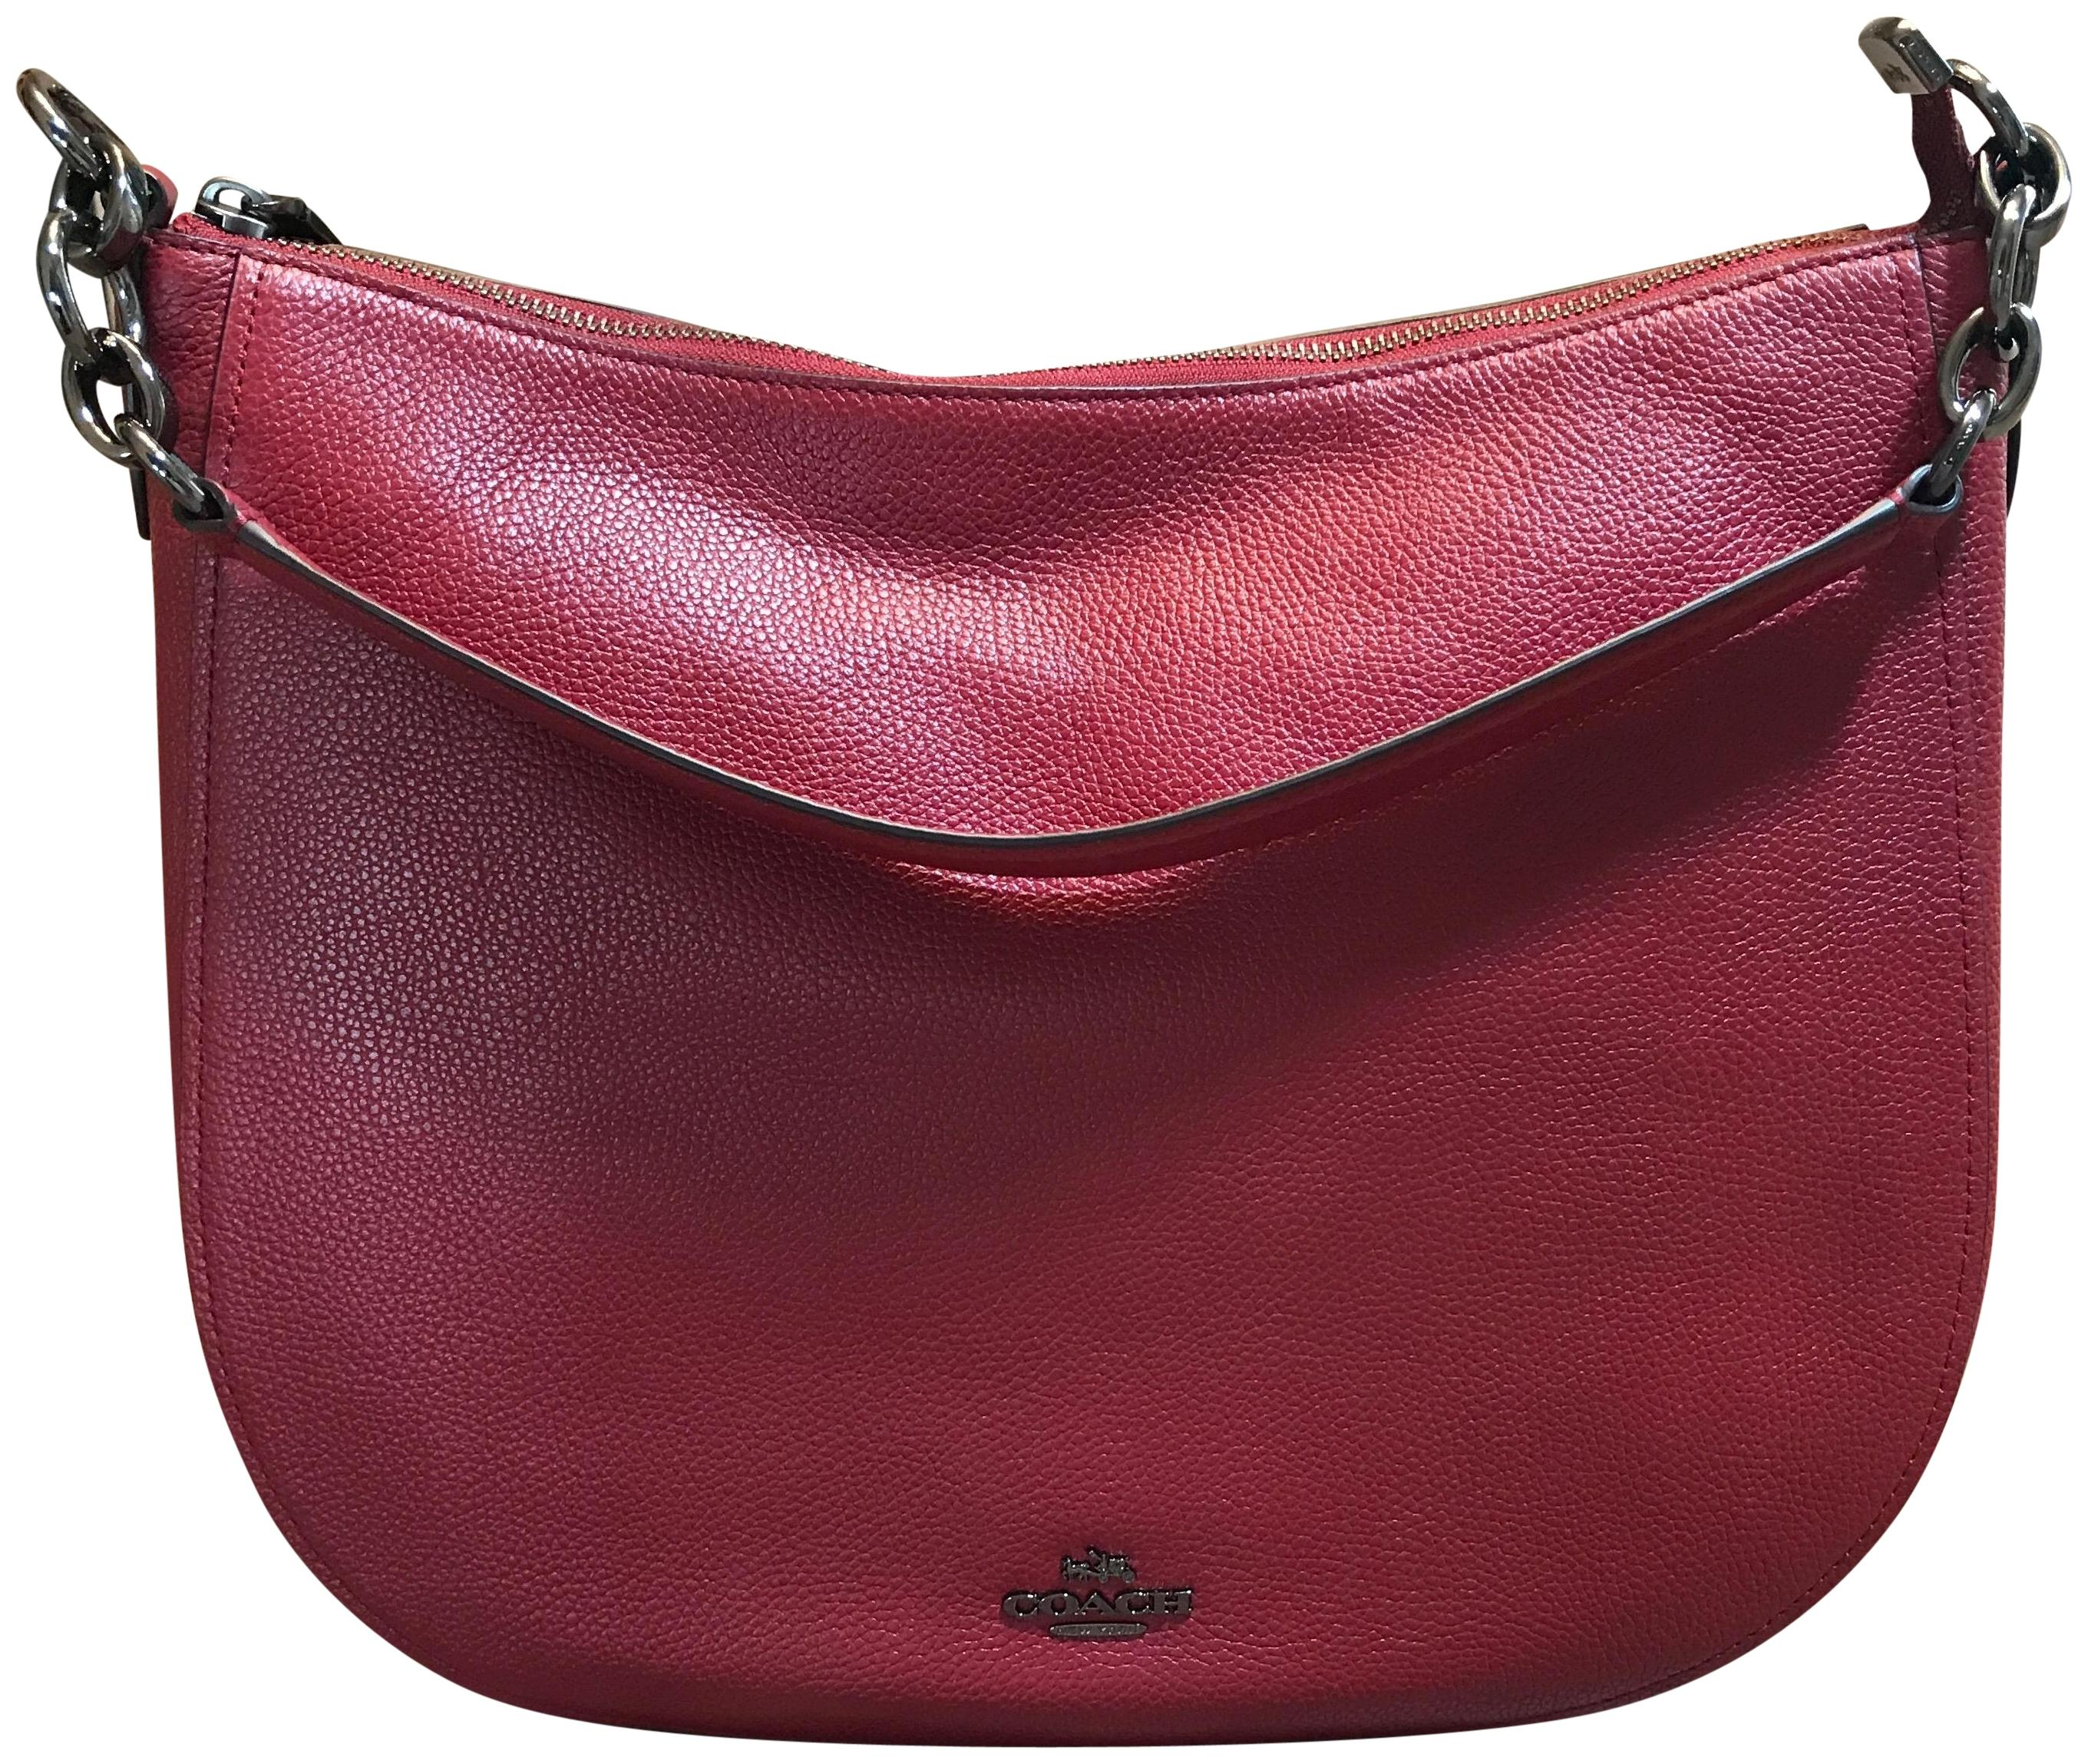 9cc711f0cedb ... wholesale coach chelsea pebble 32 dark cherry leather hobo bag tradesy  d89ca 2662a